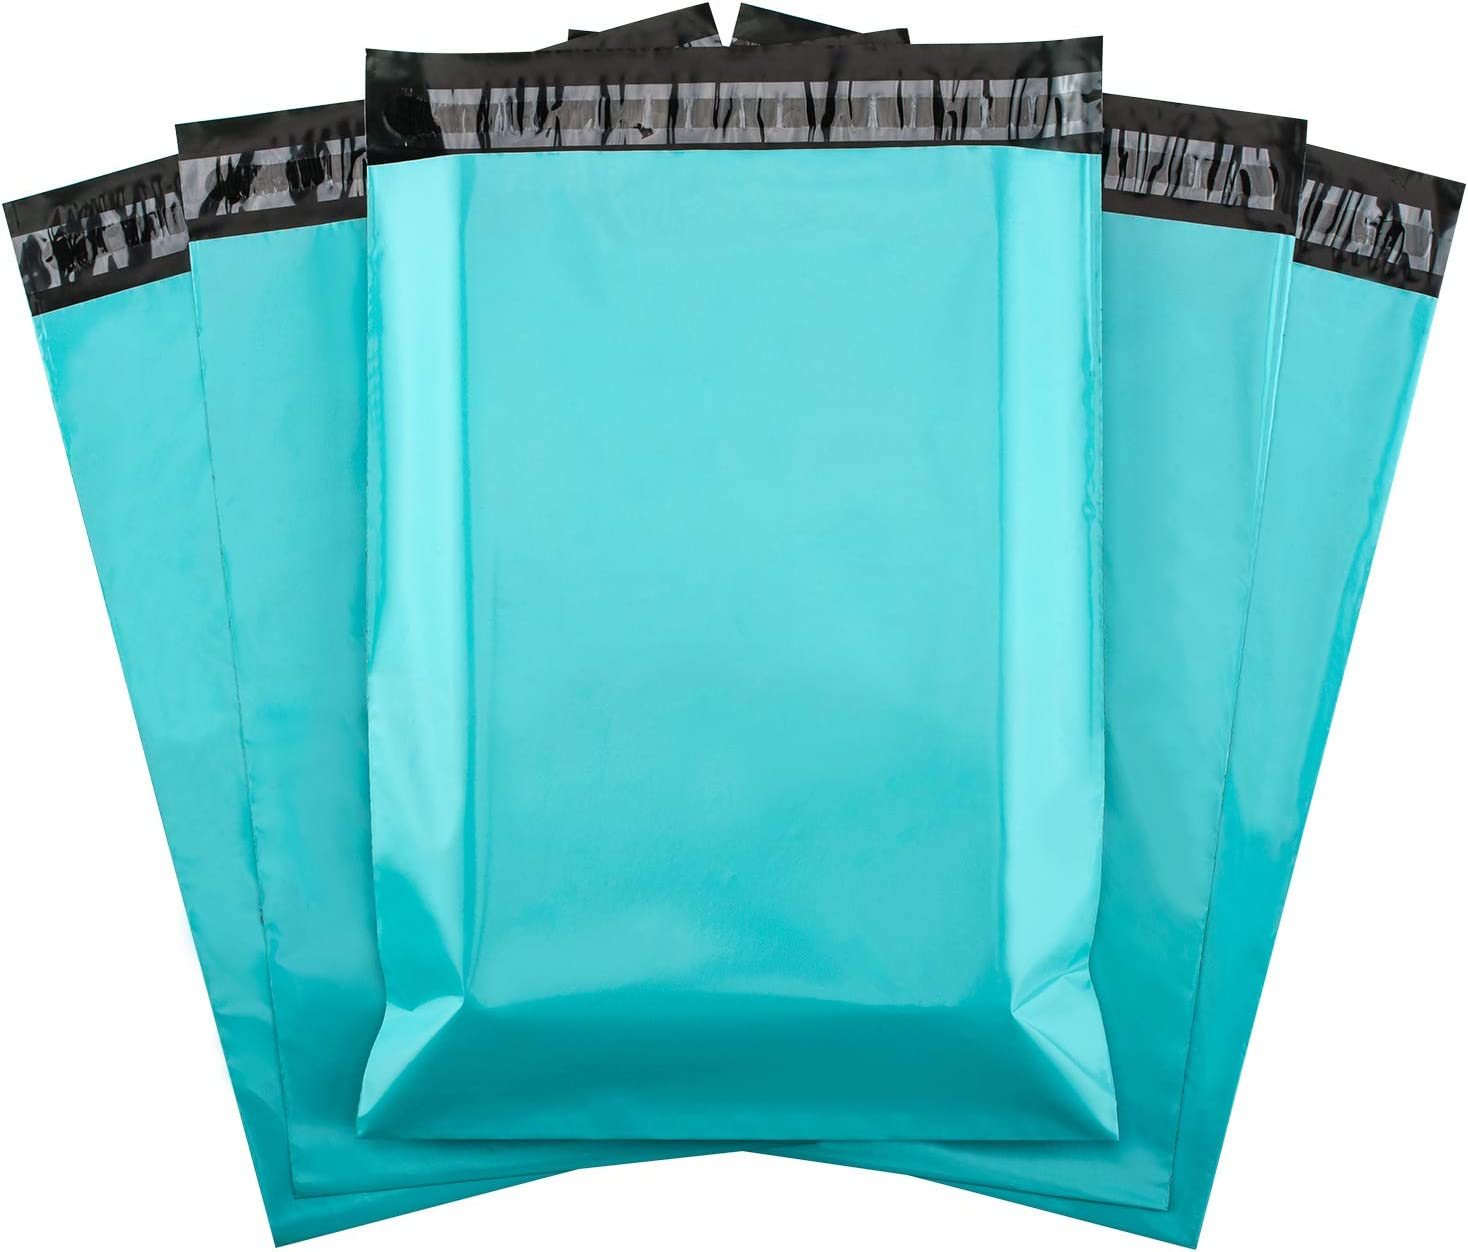 Metronic Poly Mailers 12x15.5 Envelope Mailers 100pack Shipping Bags with Self Adhesive Waterproof and Tear-Proof Postal Bags in Teal : Office Products